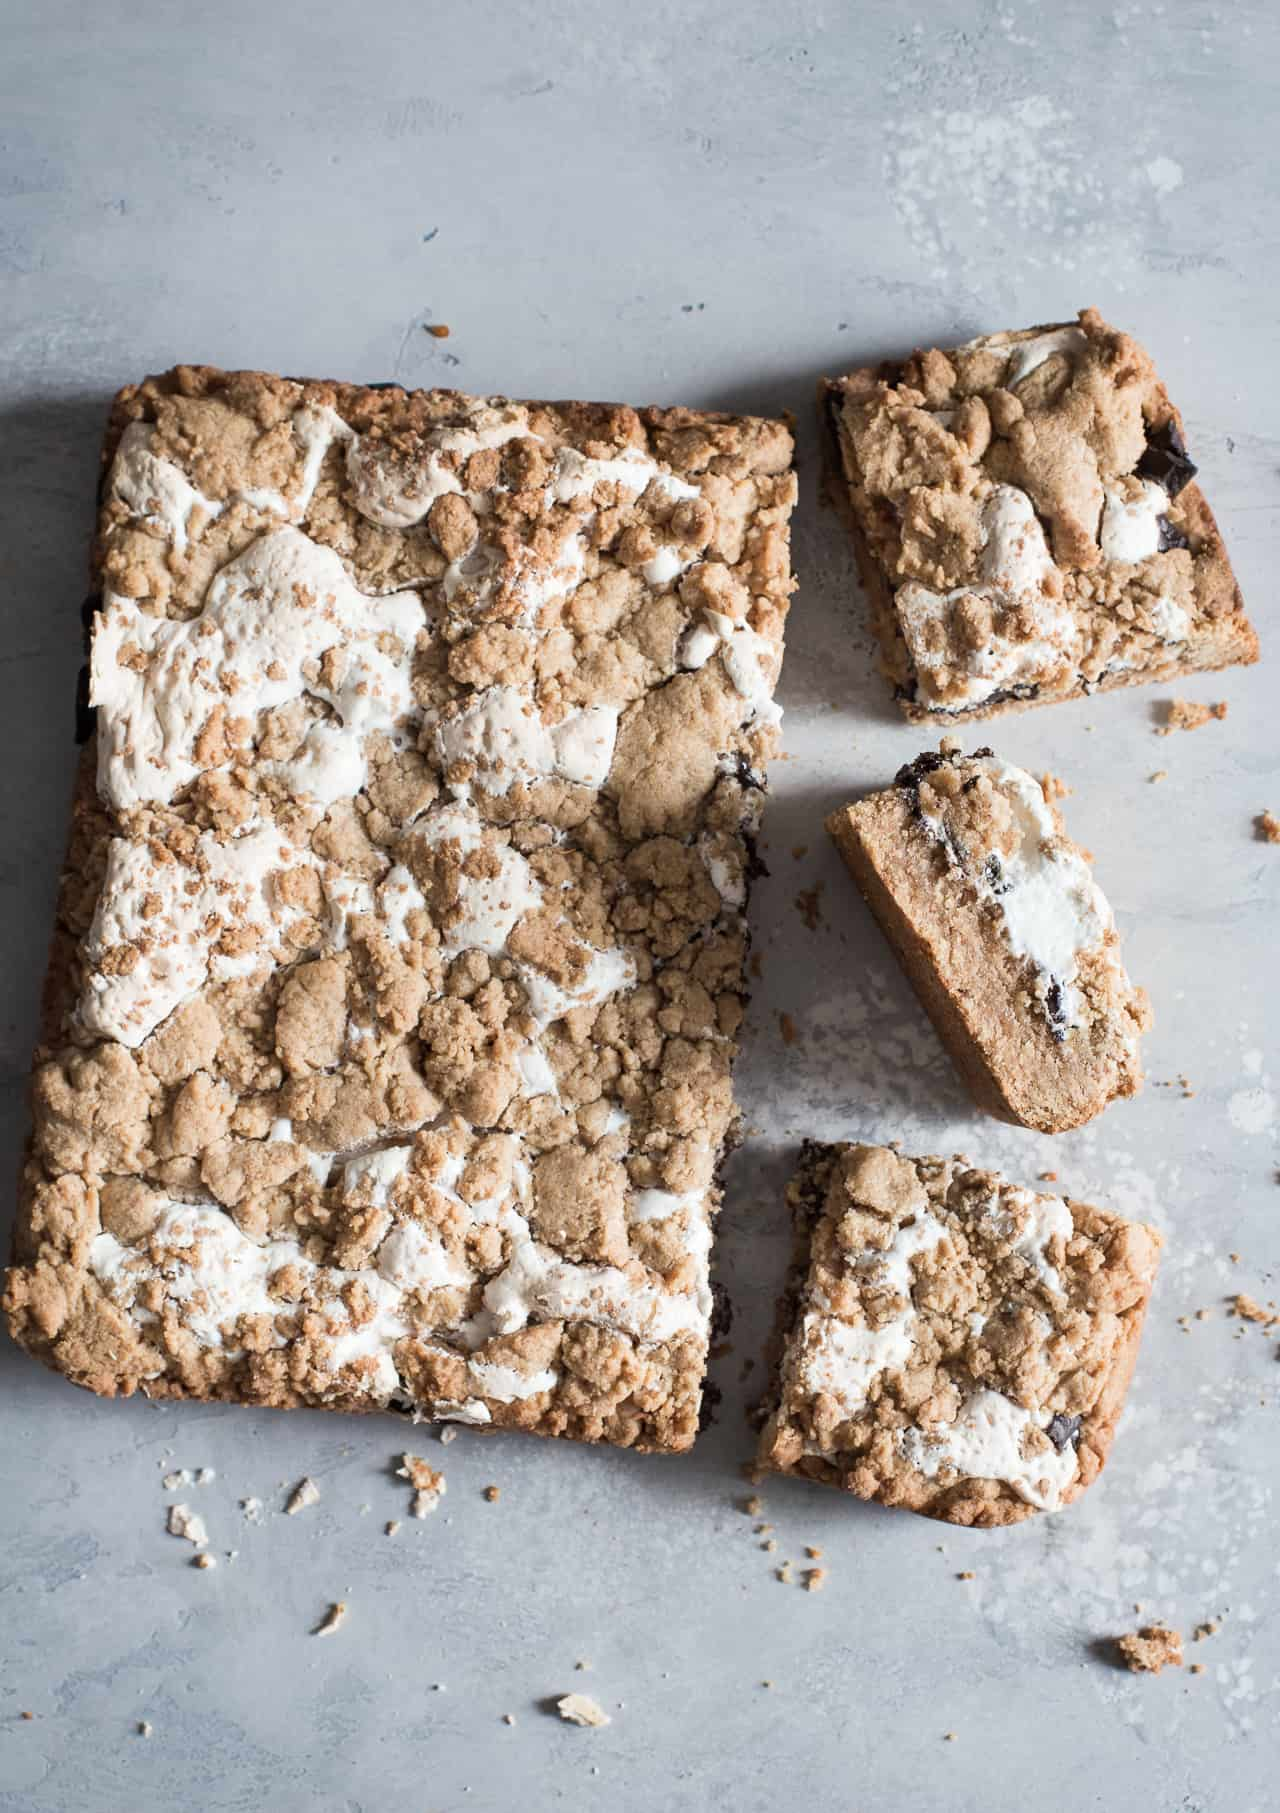 Gluten-Free Peanut Butter S'mores Bars